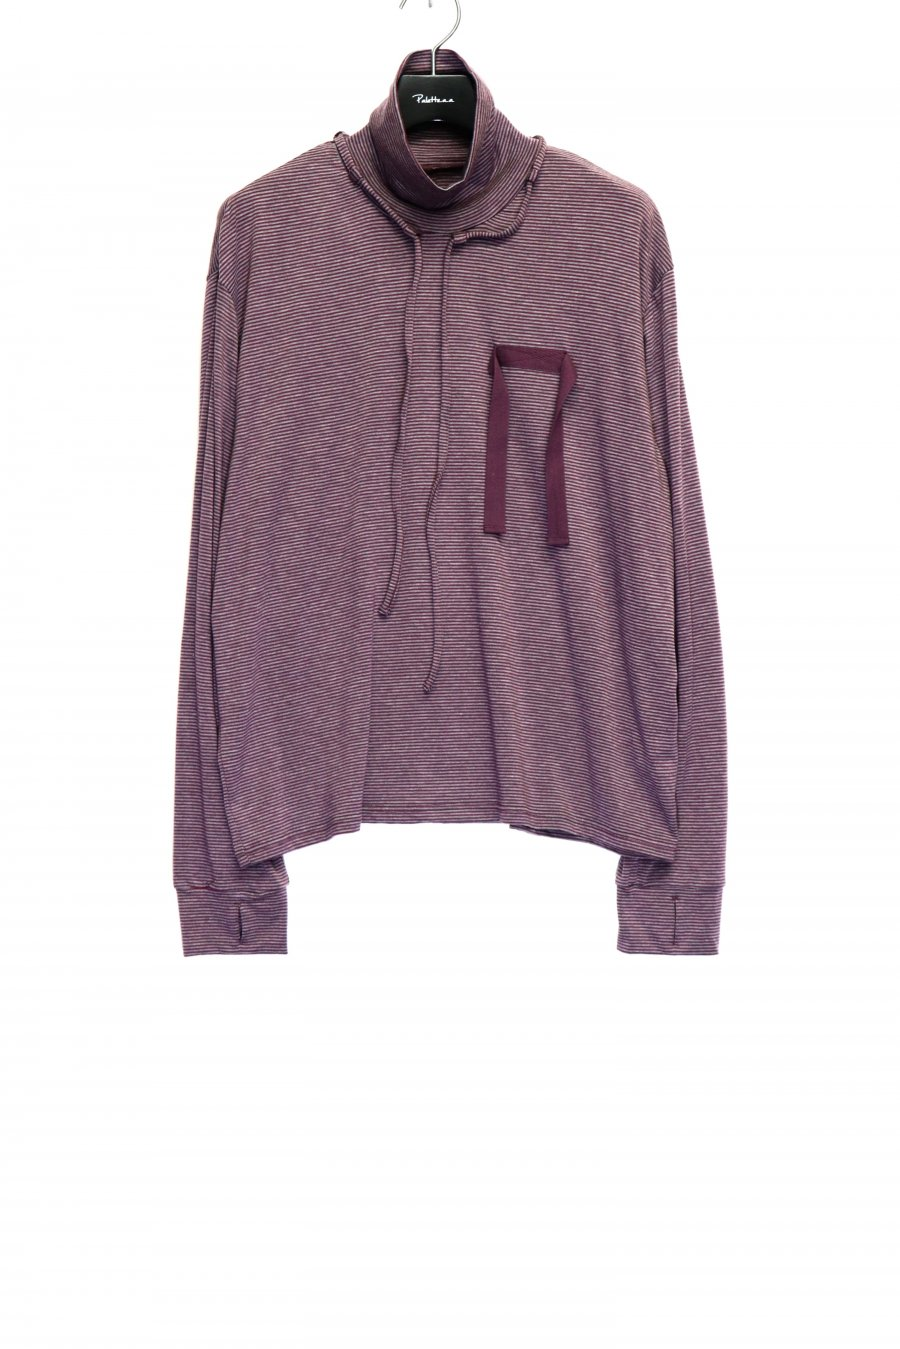 SYU.HOMME/FEMM  Hi-neck long sleeves(PURPLE GRAY)<img class='new_mark_img2' src='https://img.shop-pro.jp/img/new/icons15.gif' style='border:none;display:inline;margin:0px;padding:0px;width:auto;' />